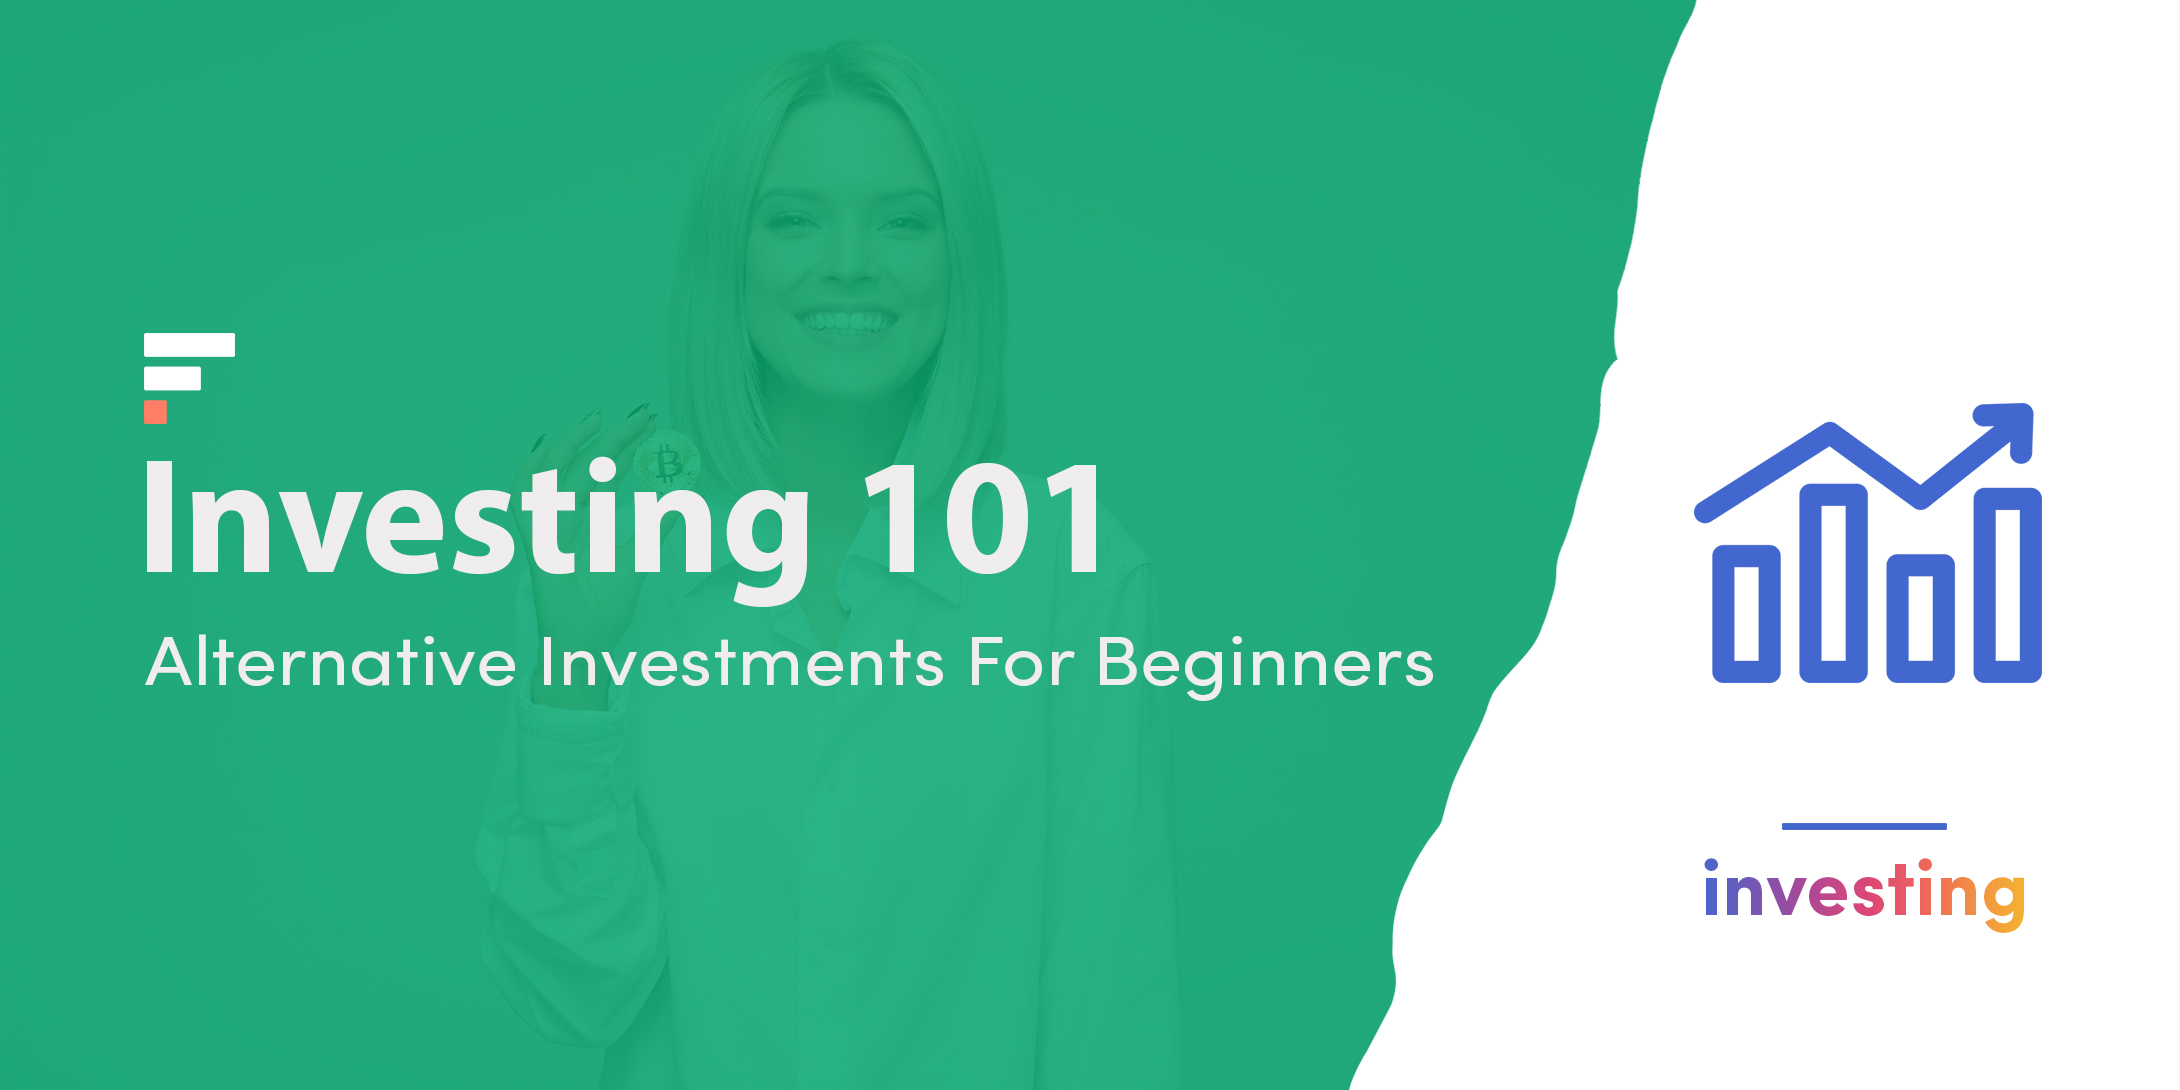 Alternative investments for beginners